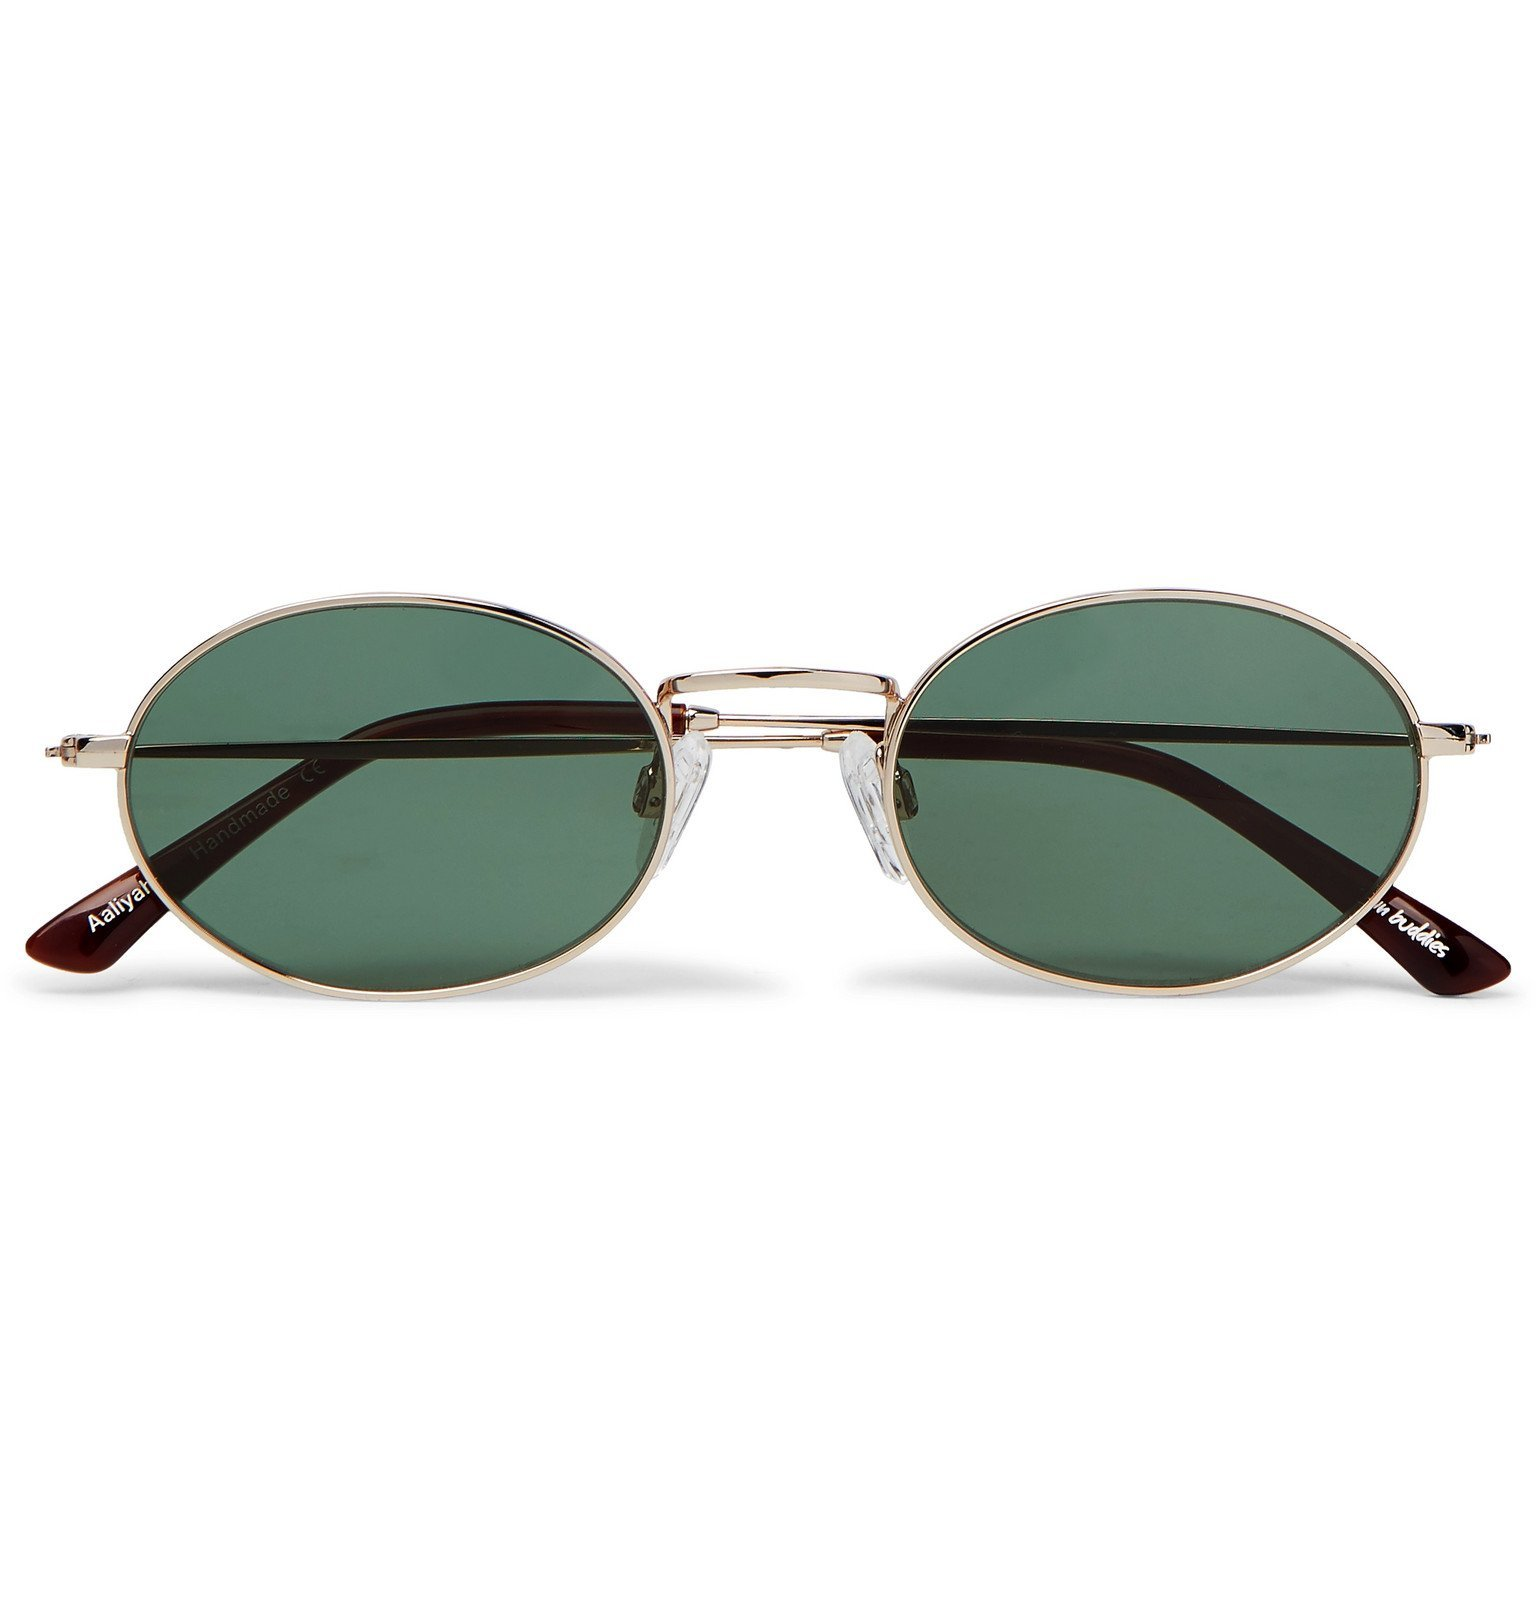 Photo: Sun Buddies - Aaliyah Oval-Frame Gold-Tone and Tortoiseshell Acetate Sunglasses - Gold